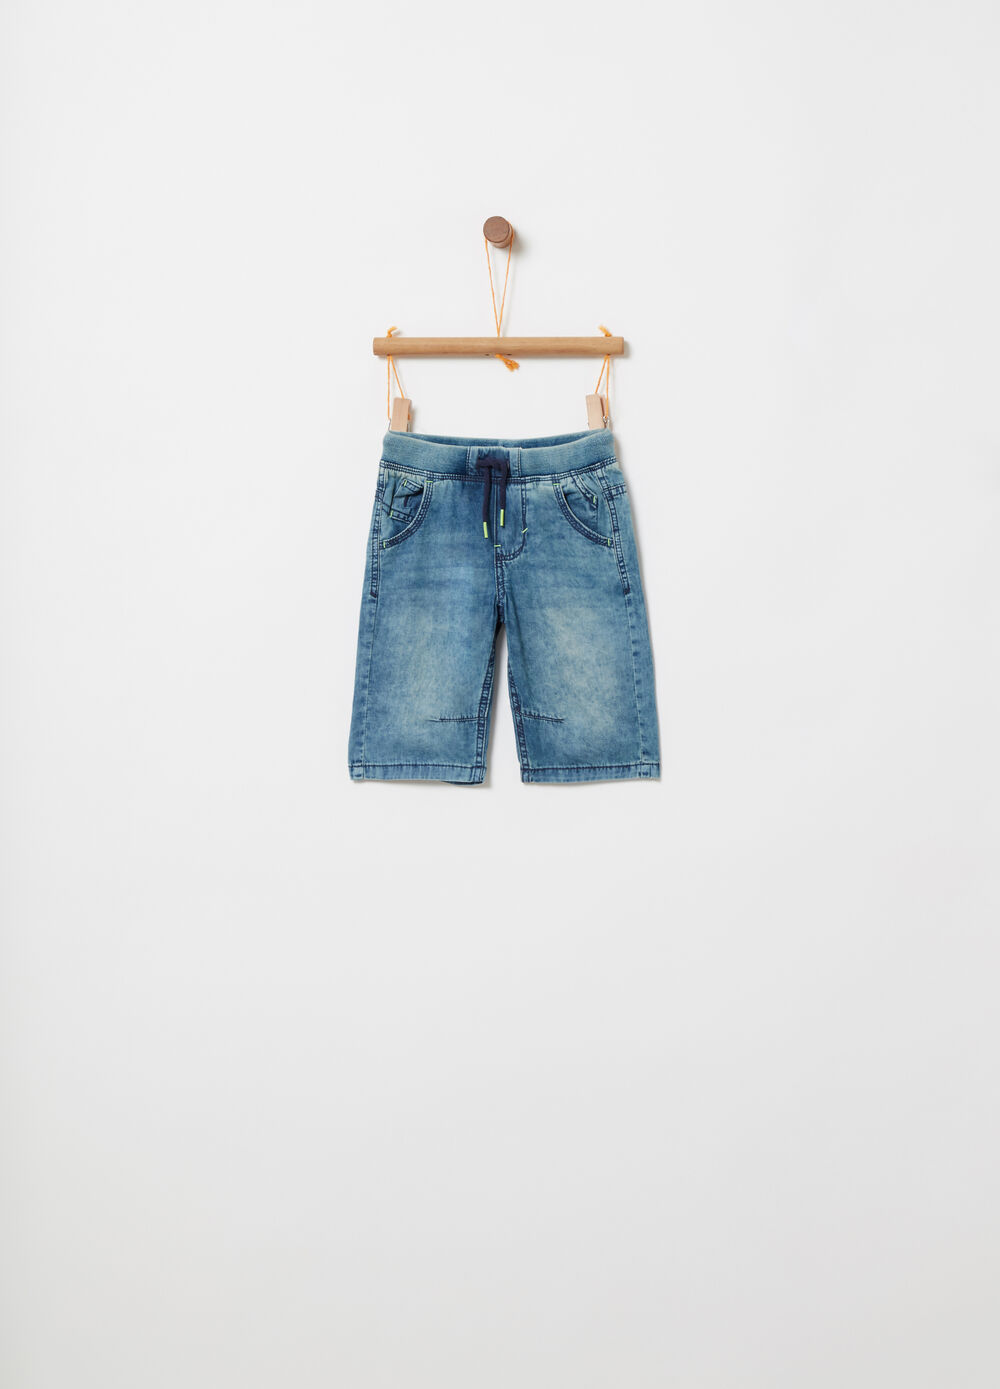 Washed-effect denim shorts with drawstring